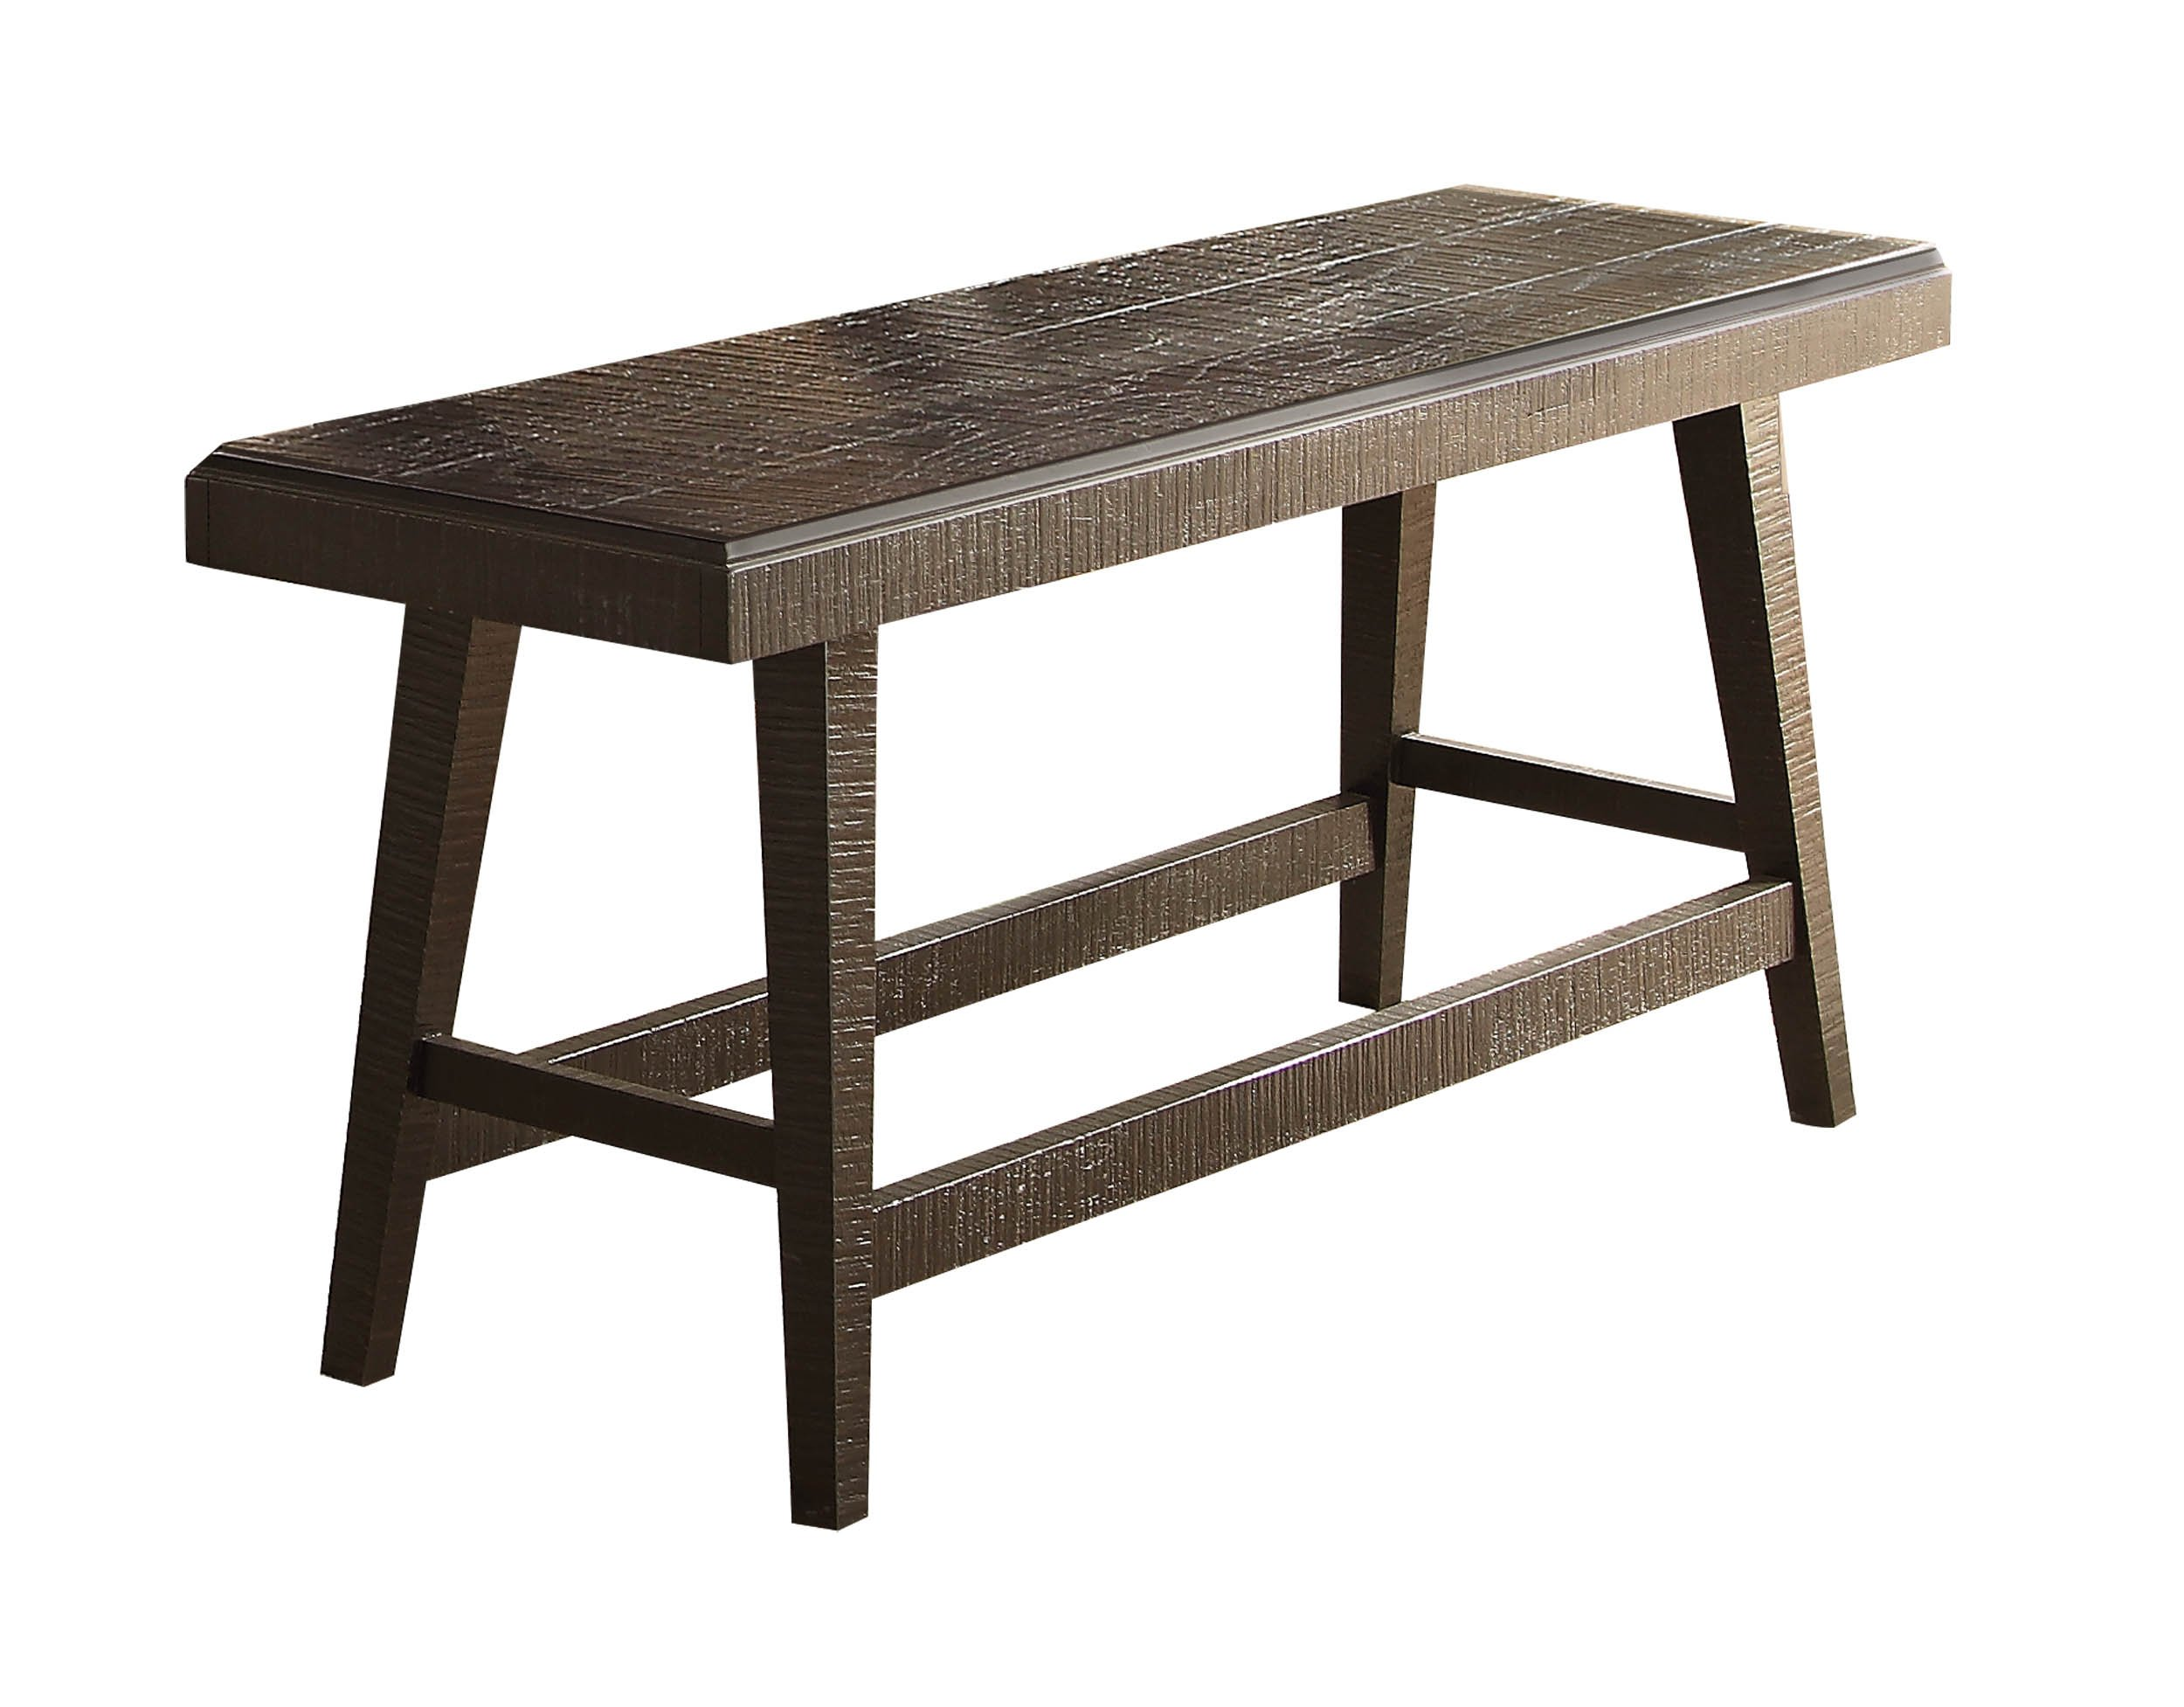 Homelegance Fenwick 60'' Rustic Counter Height Dining Bench, Gray